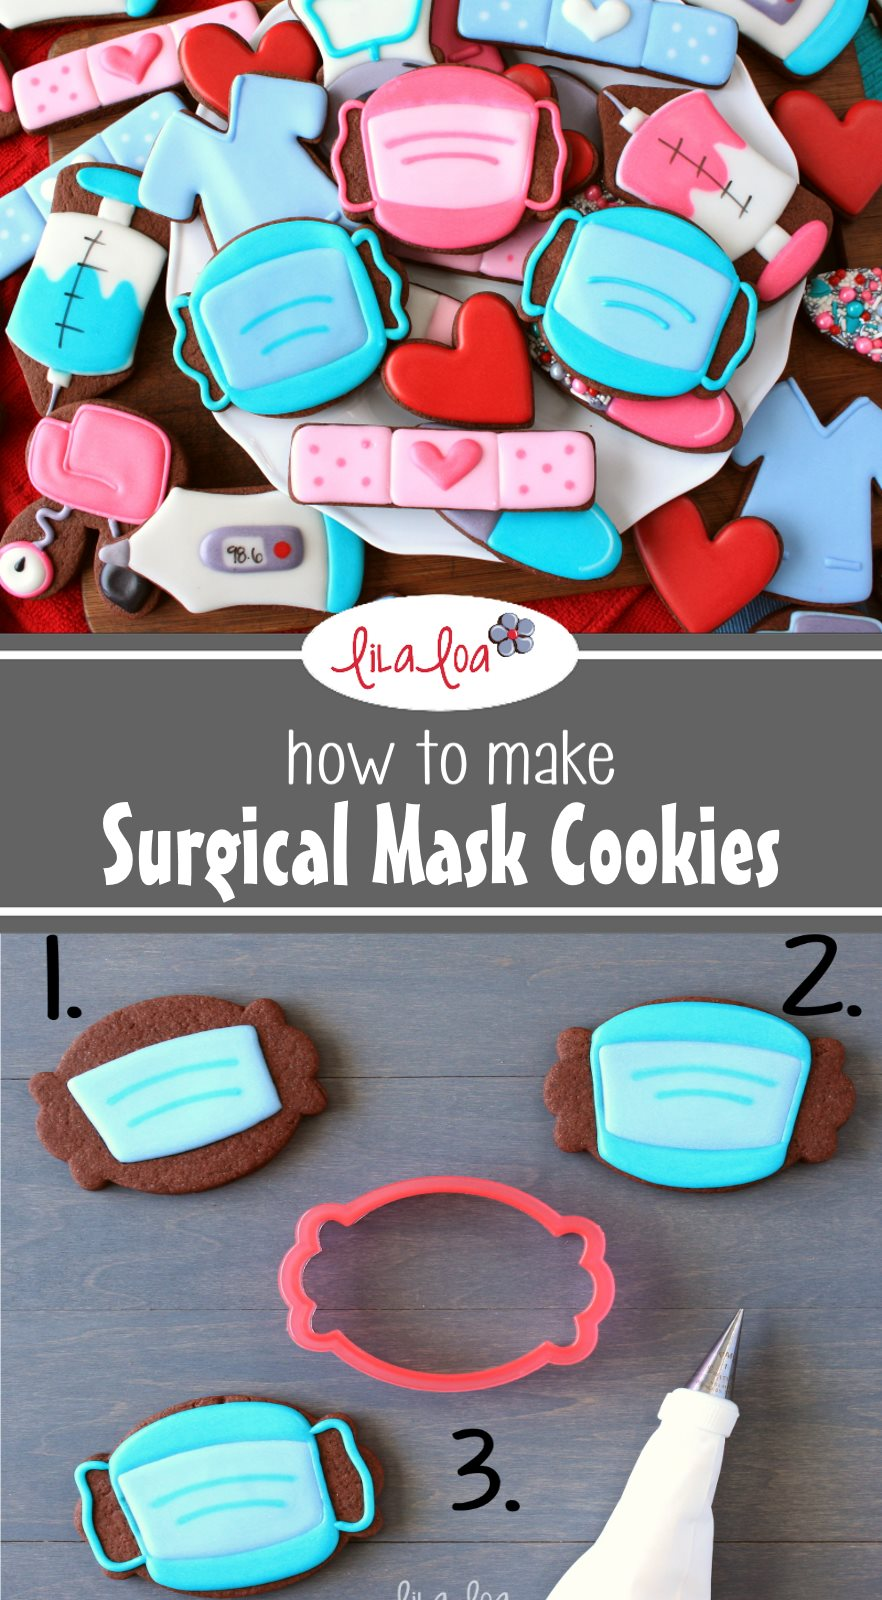 How Sugar Decorated Cookies Surgical Make To Mask